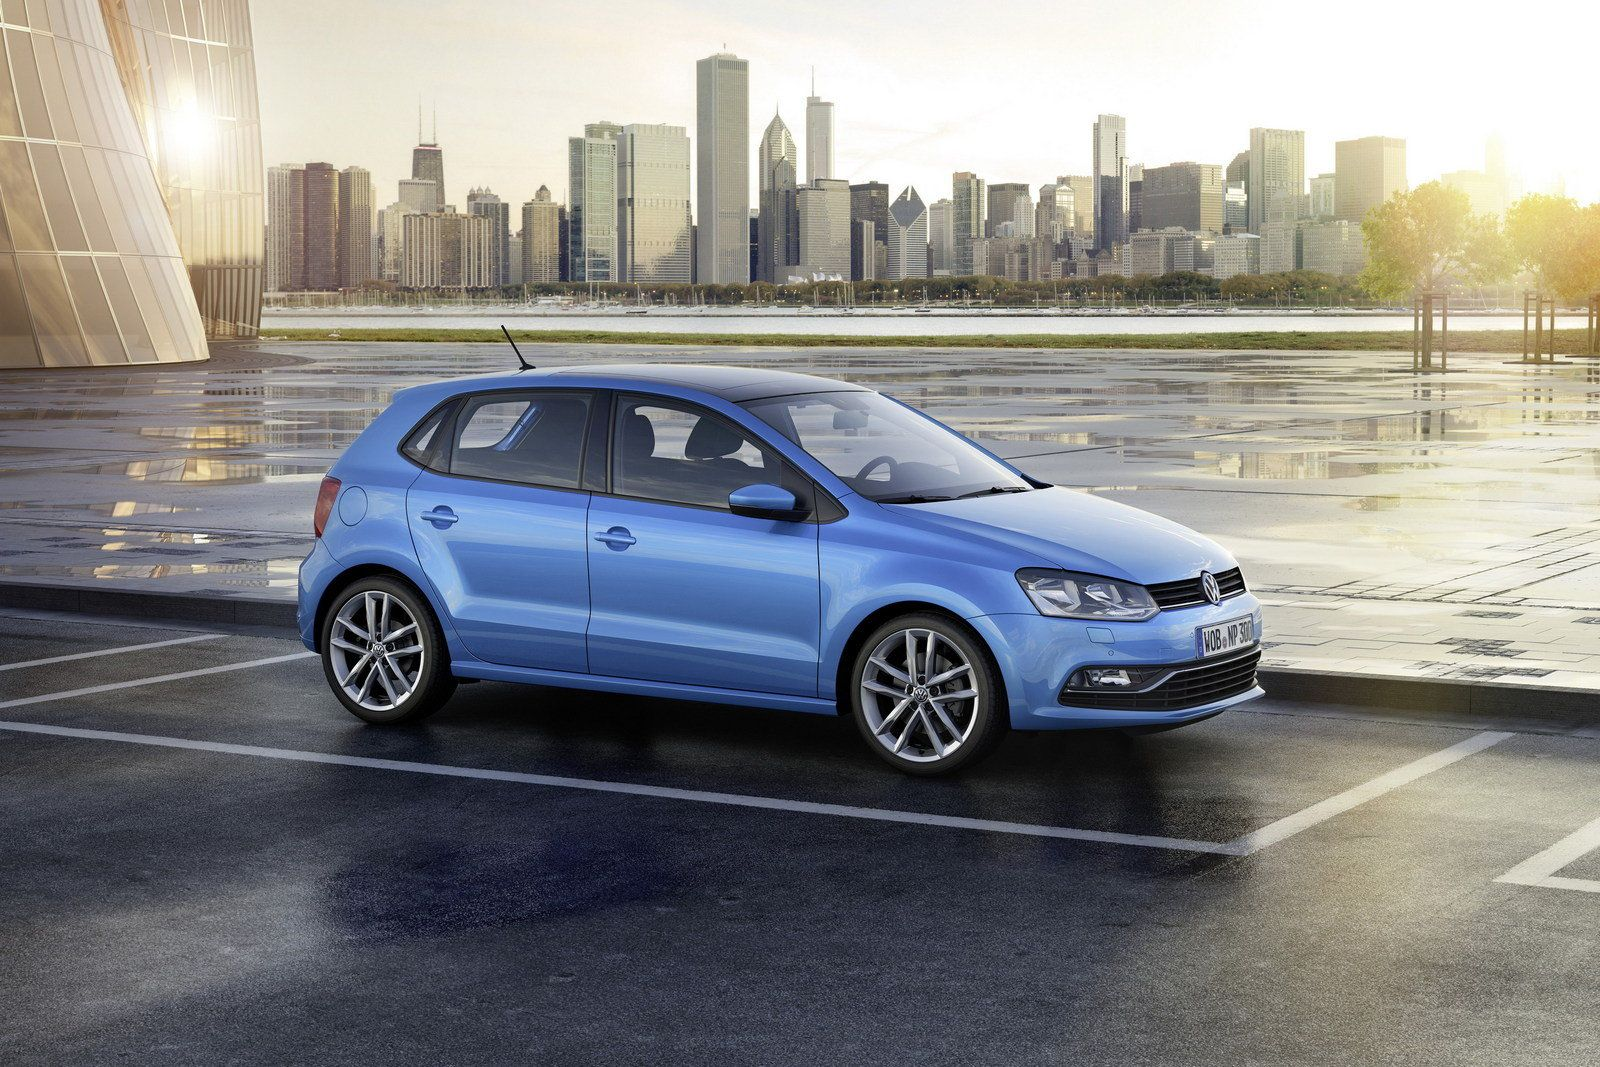 2018 volkswagen polo release date - 2018 cars release 2019